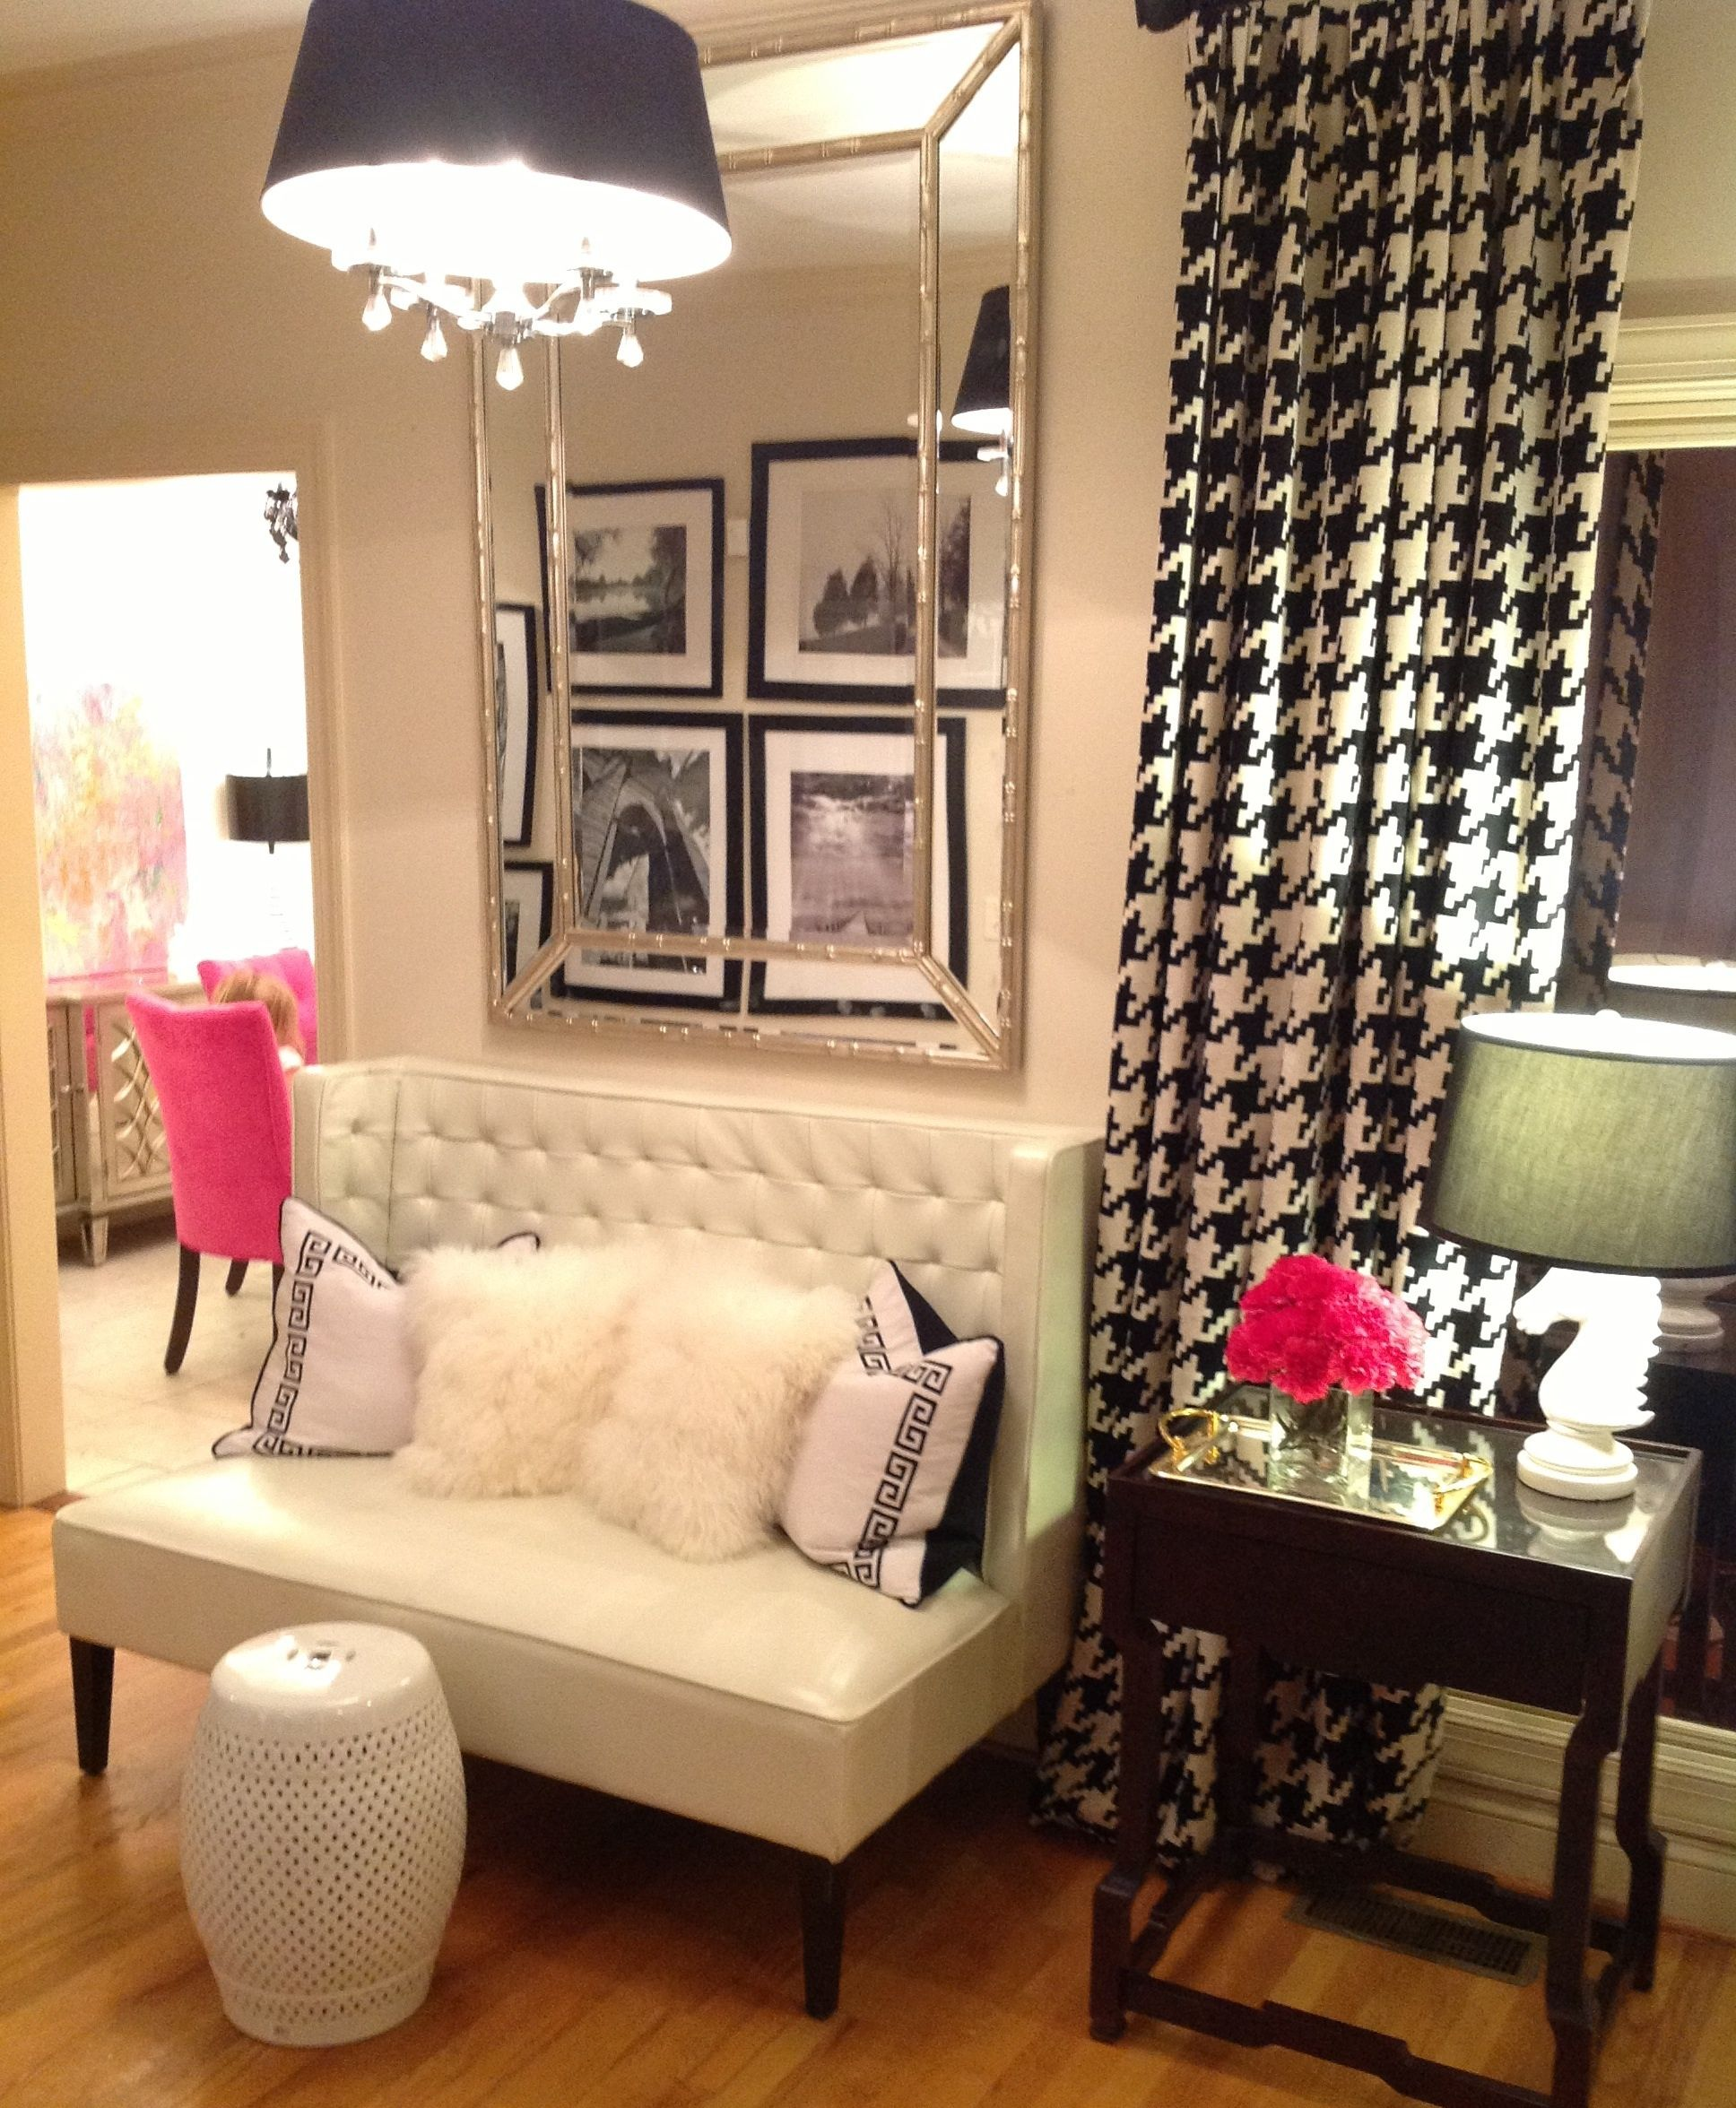 Black White Pink Loves It All Houndstooth Drapes Greek Key And Furry Pillows Fab Mirror Glam Seating